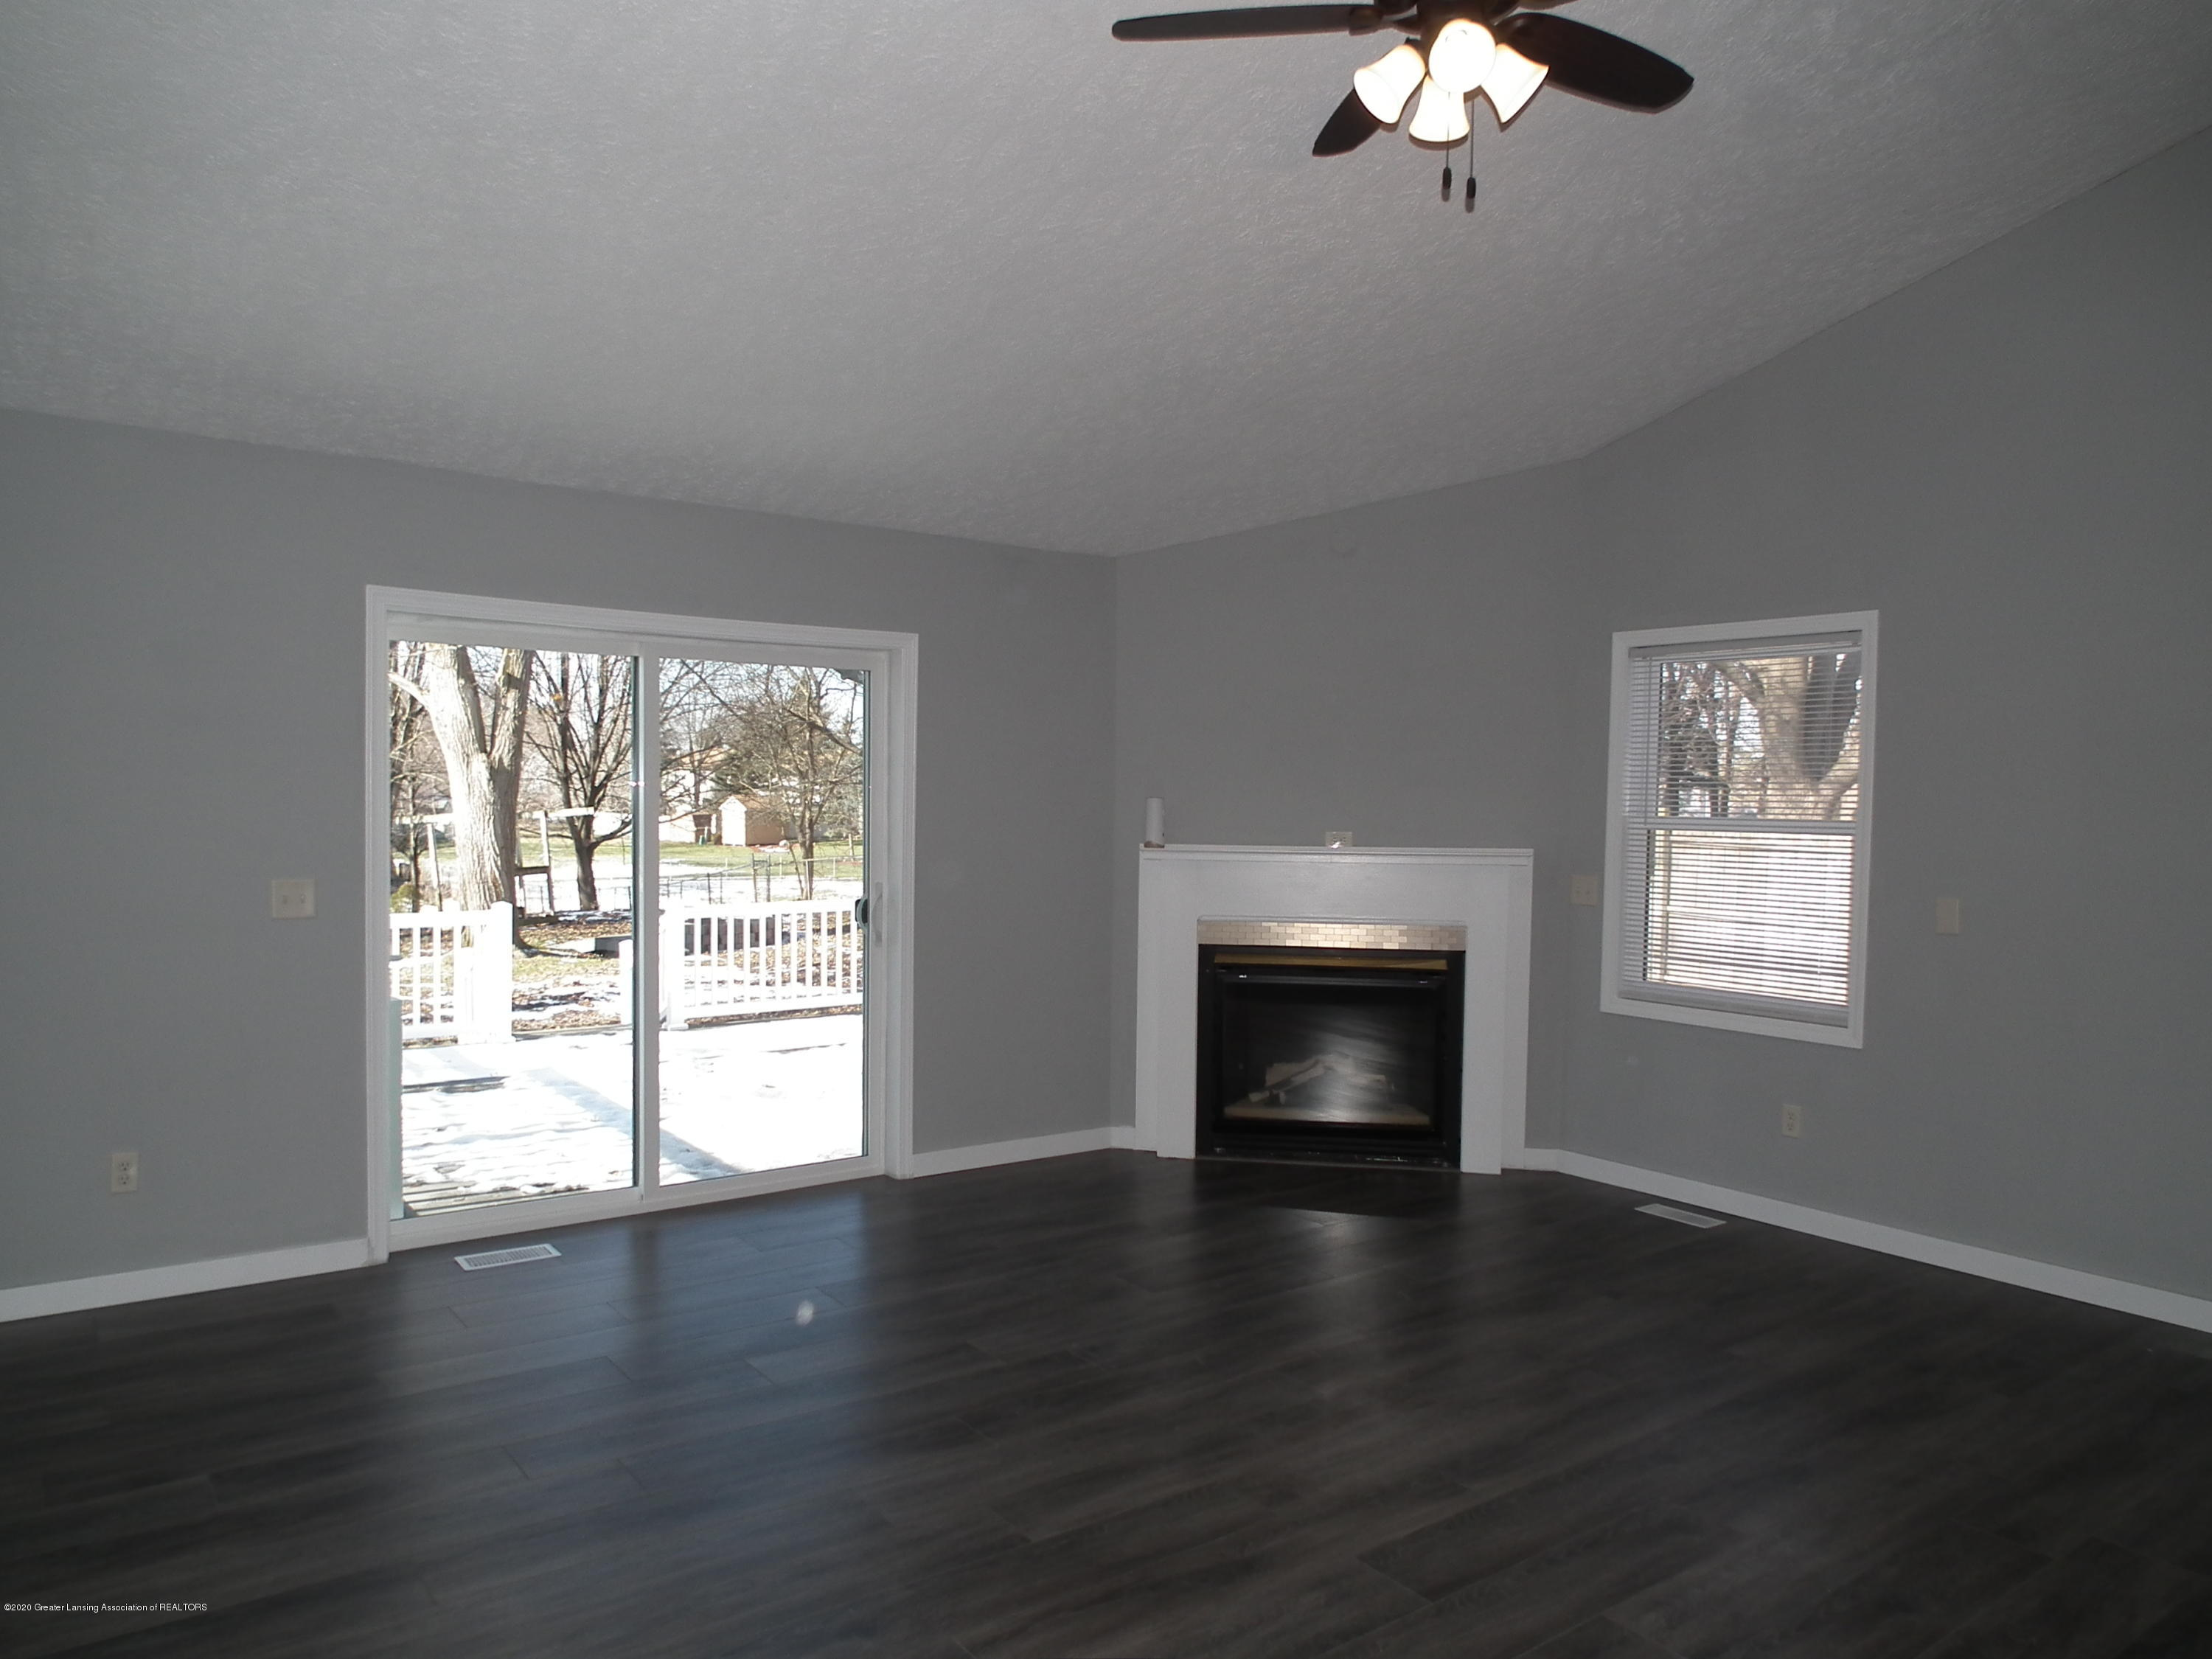 530 Stoll Rd - Living room a - Copy - 18